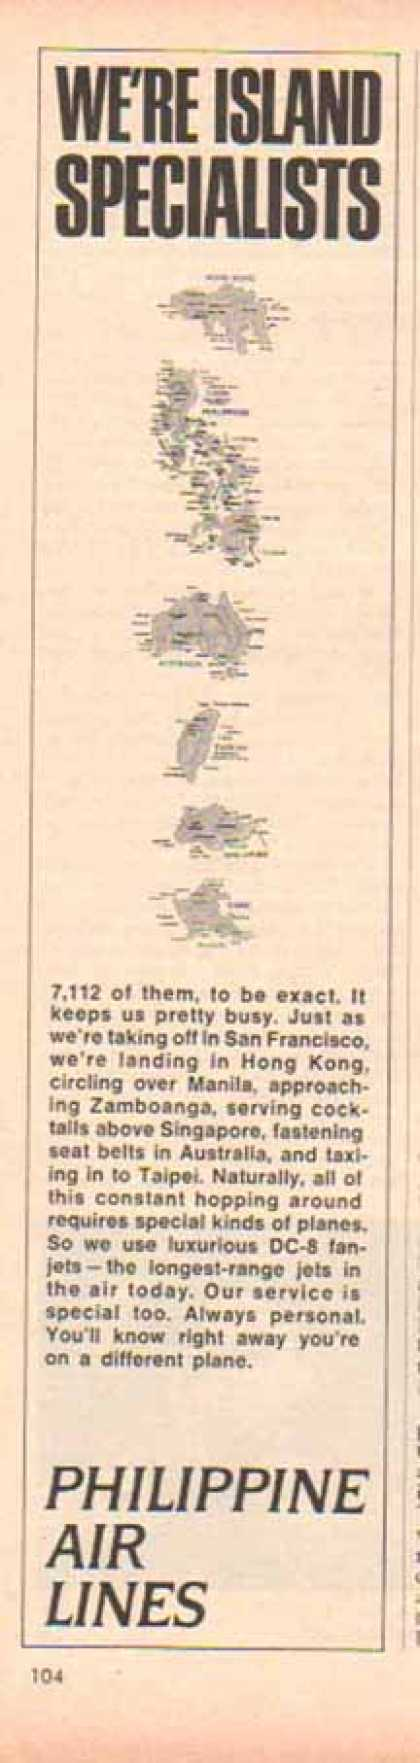 Philippine Air Lines – 7112 Islands (1966)